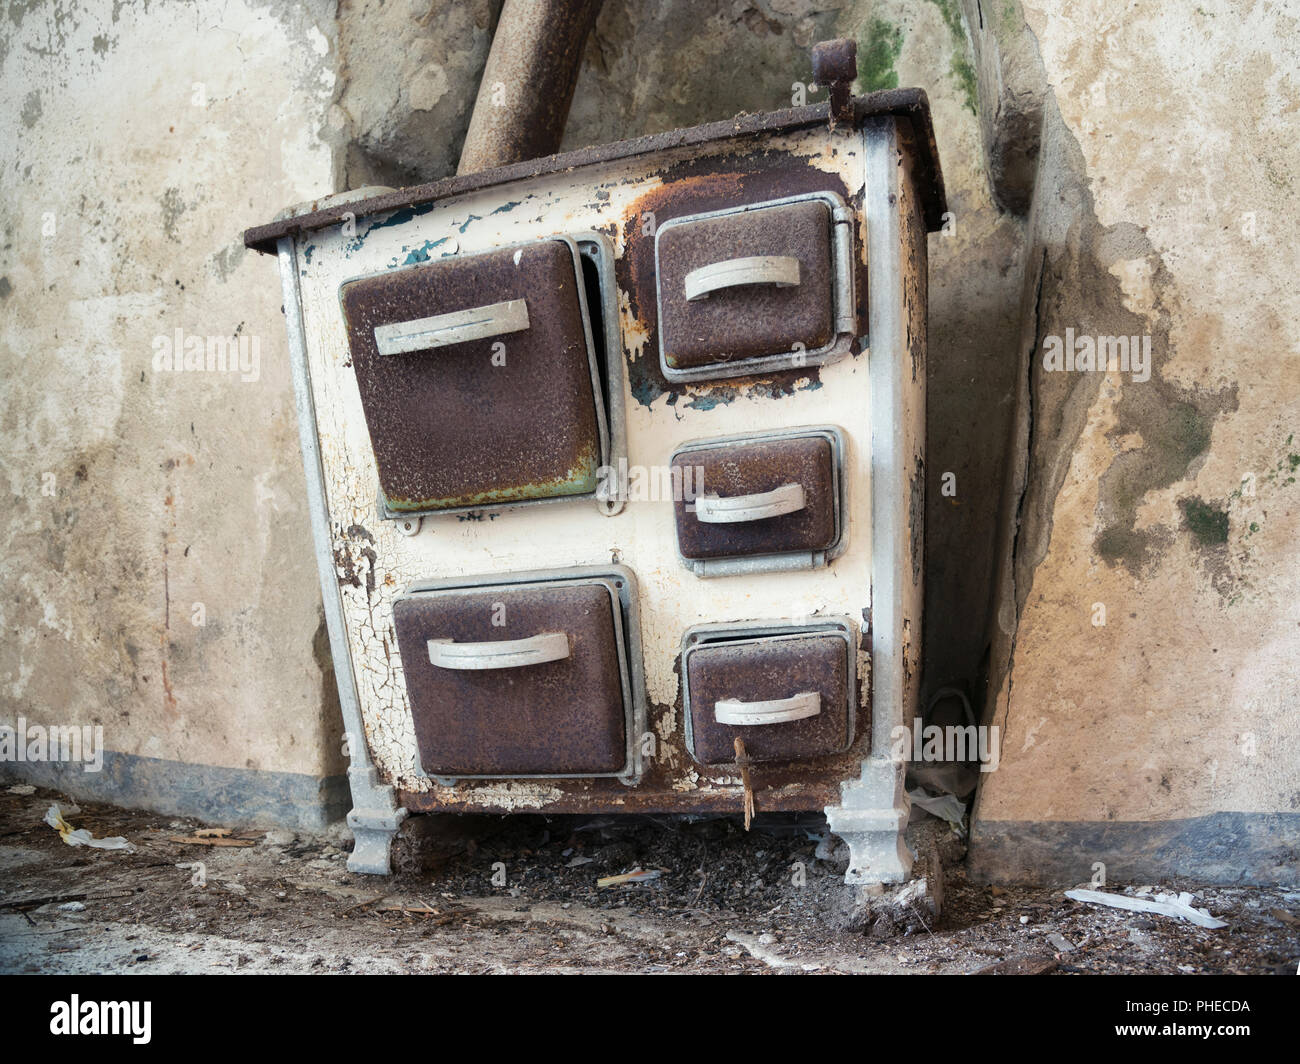 old stove in abandoned rural farm - Stock Image